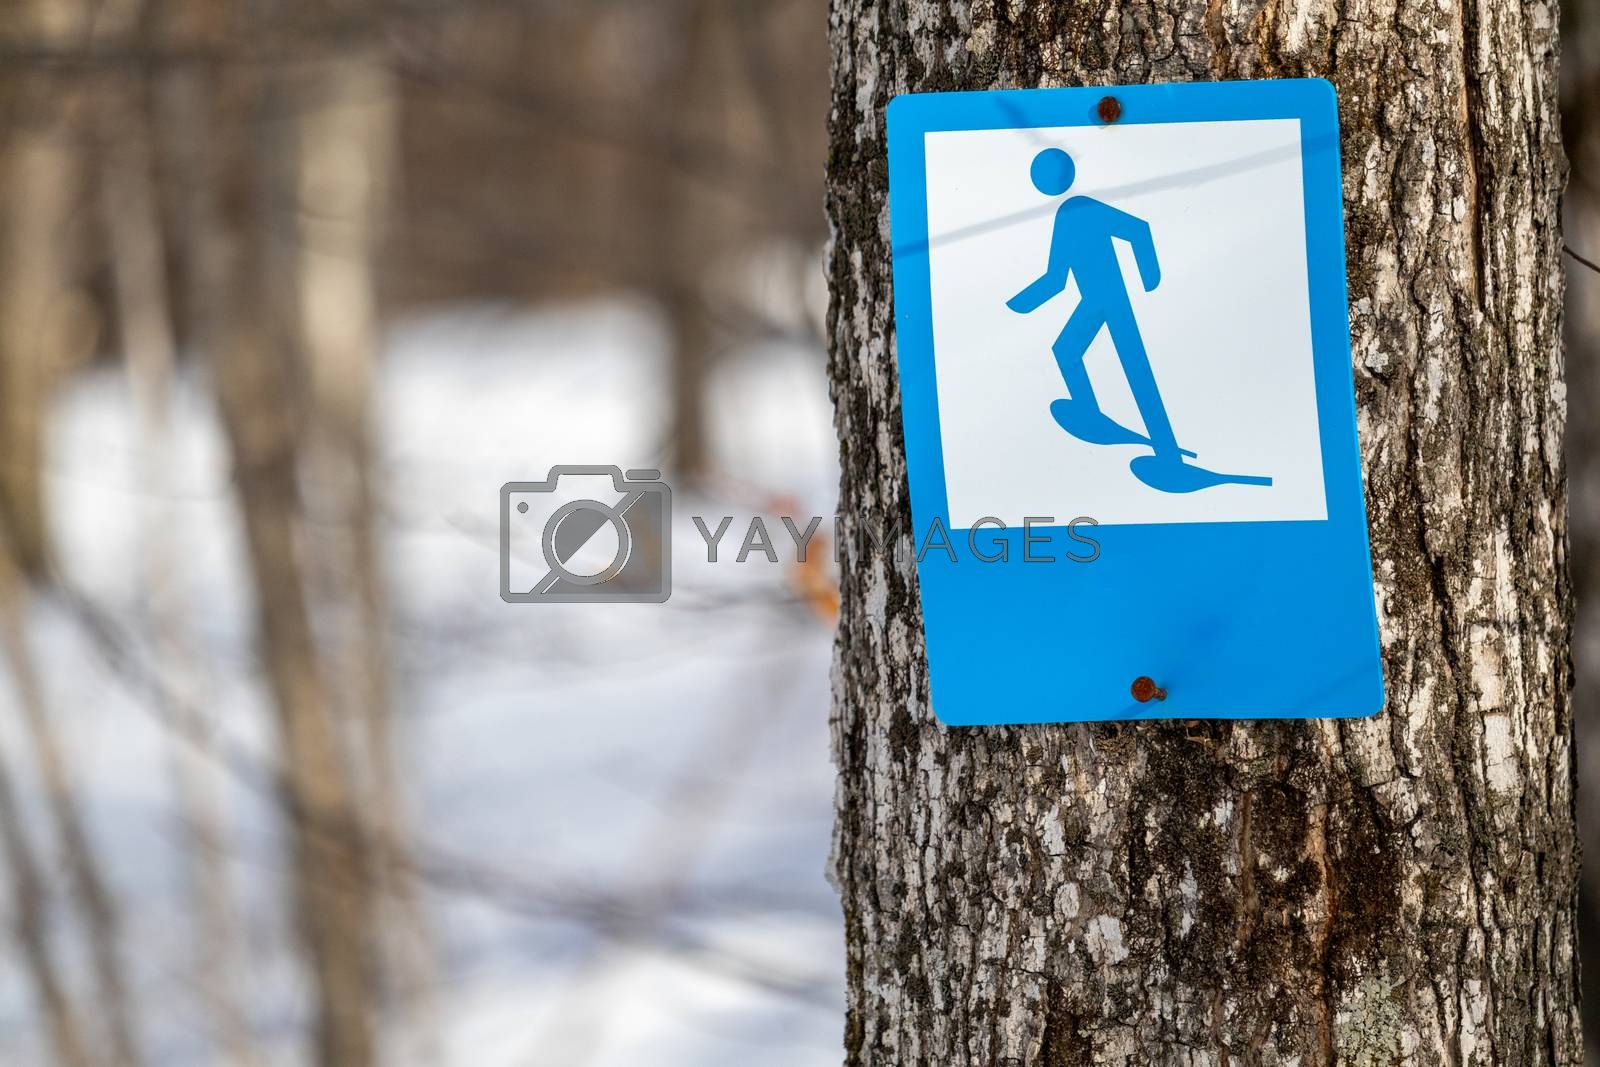 A blue-and-white sign features an illustration of a stick figure wearing snowshoes. This trail marker indicates a trail suitable for snowshoeing in the winter season.